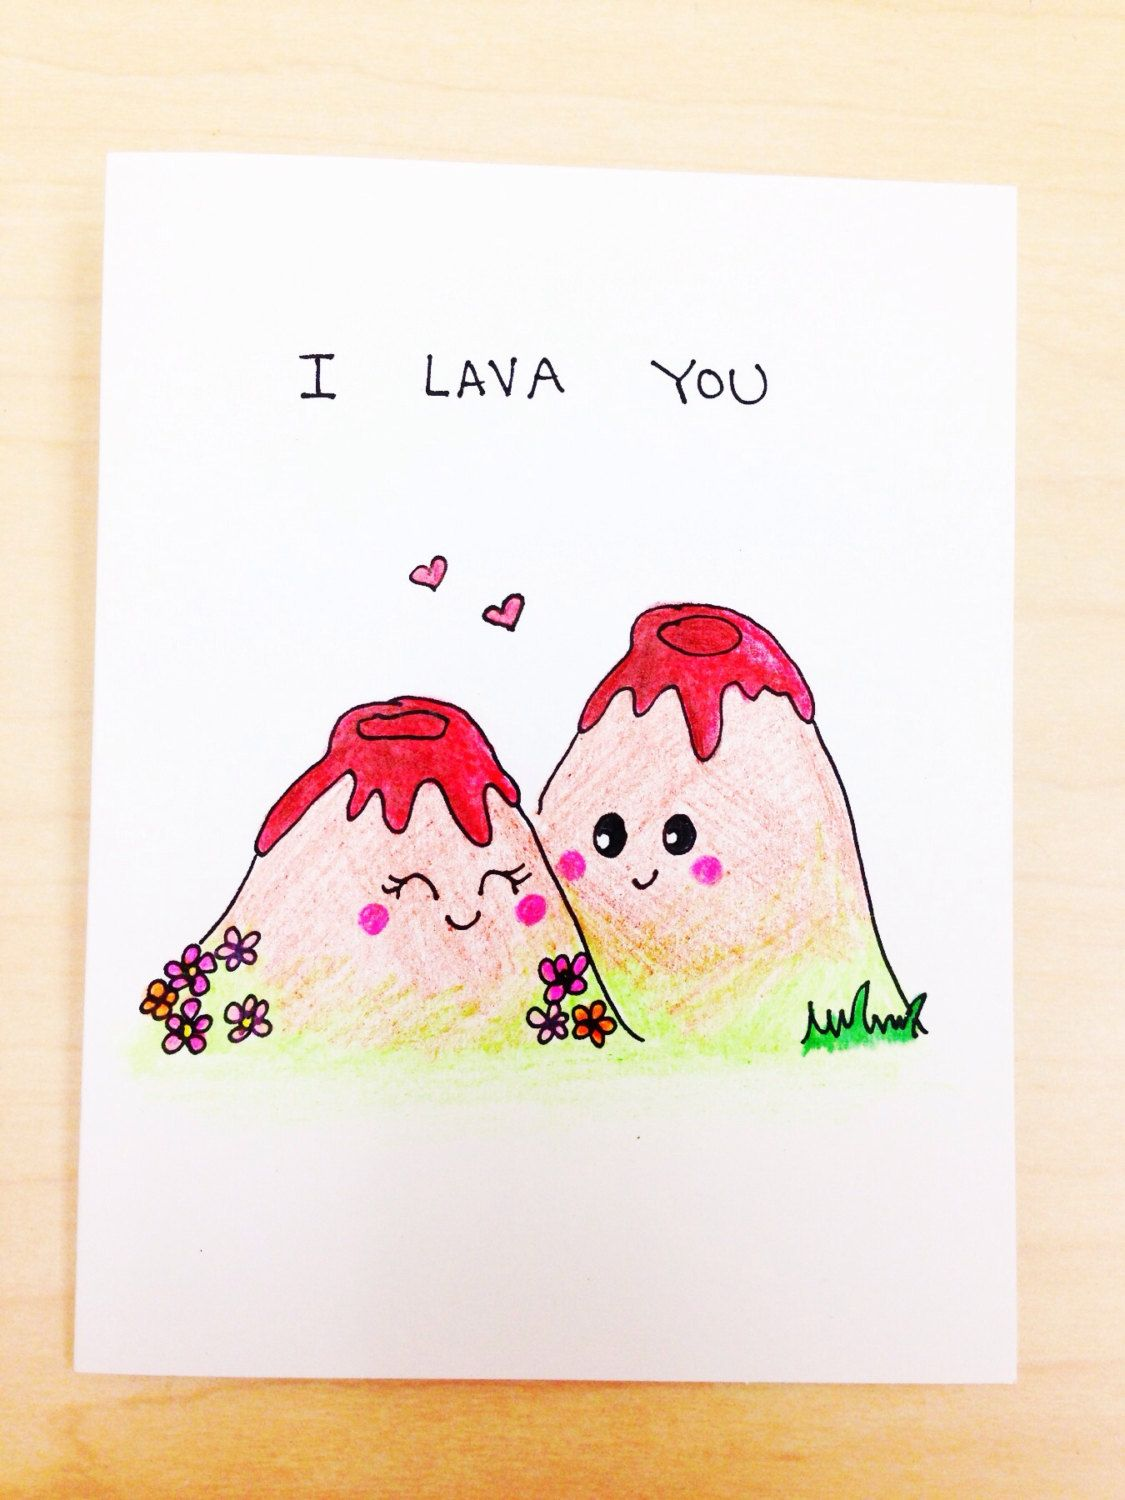 6. Funny handmade card ideas for girlfriend Funny love